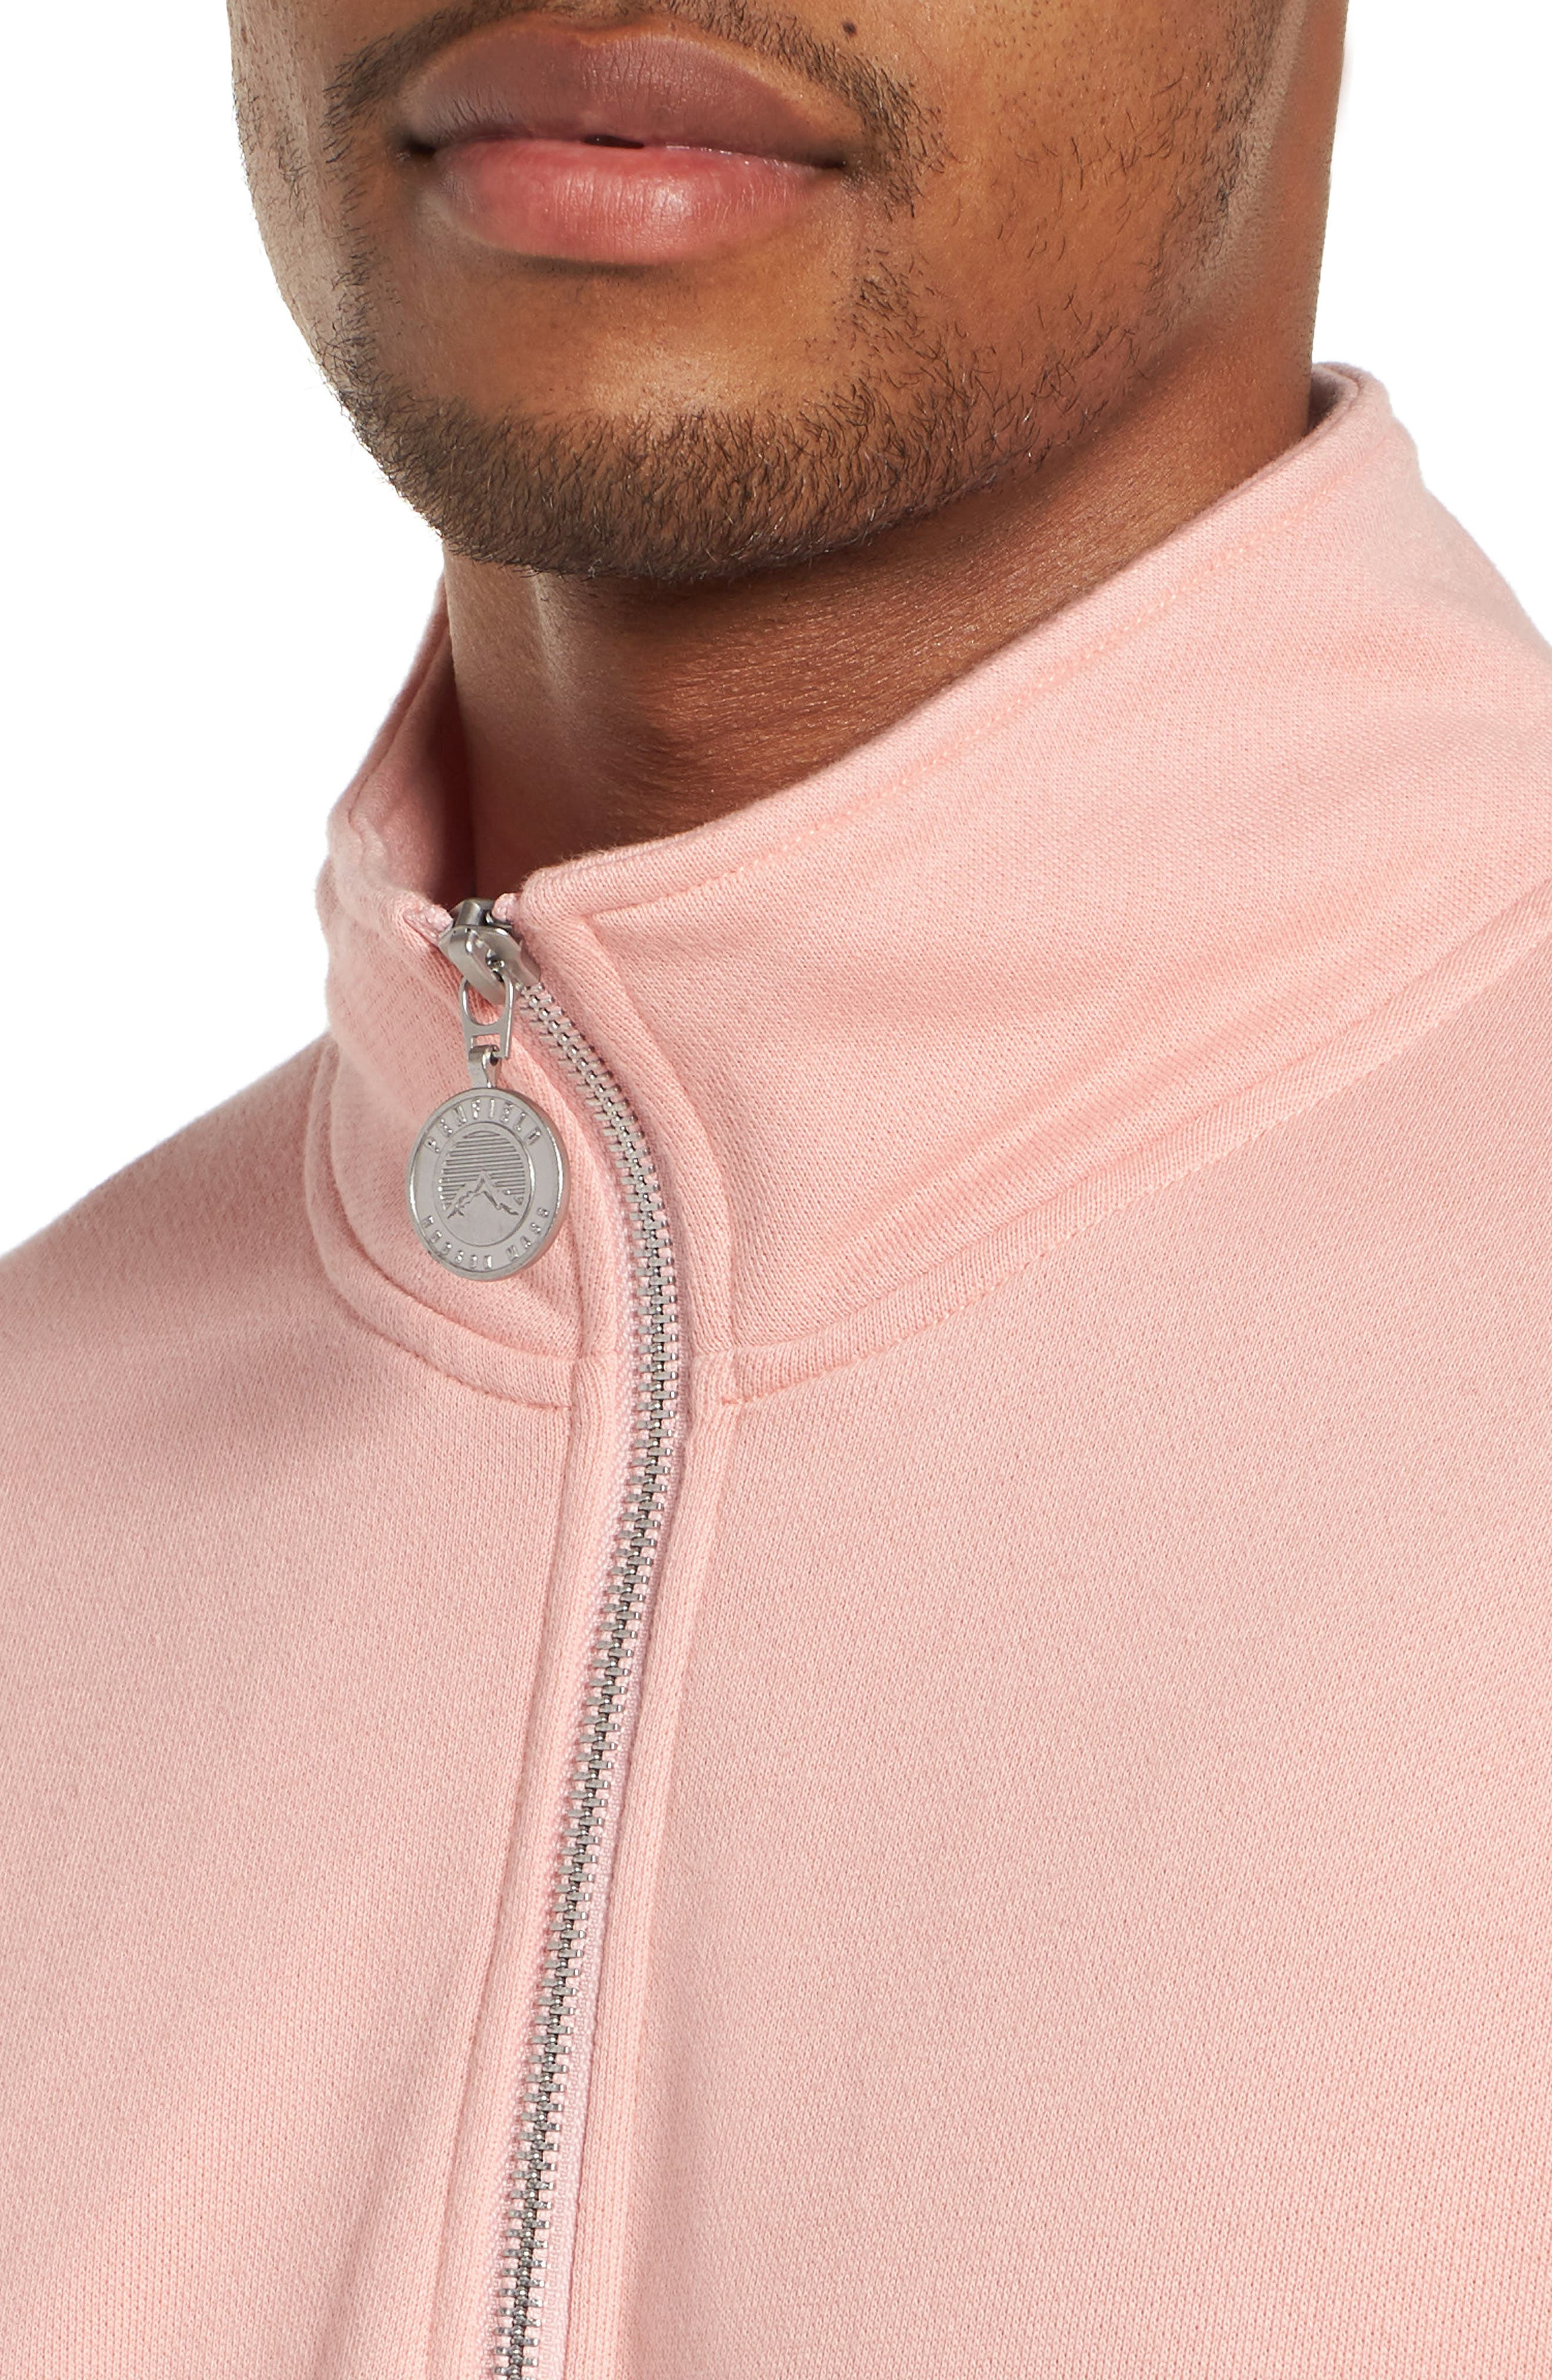 Hosmer Sweatshirt,                             Alternate thumbnail 4, color,                             Orchid